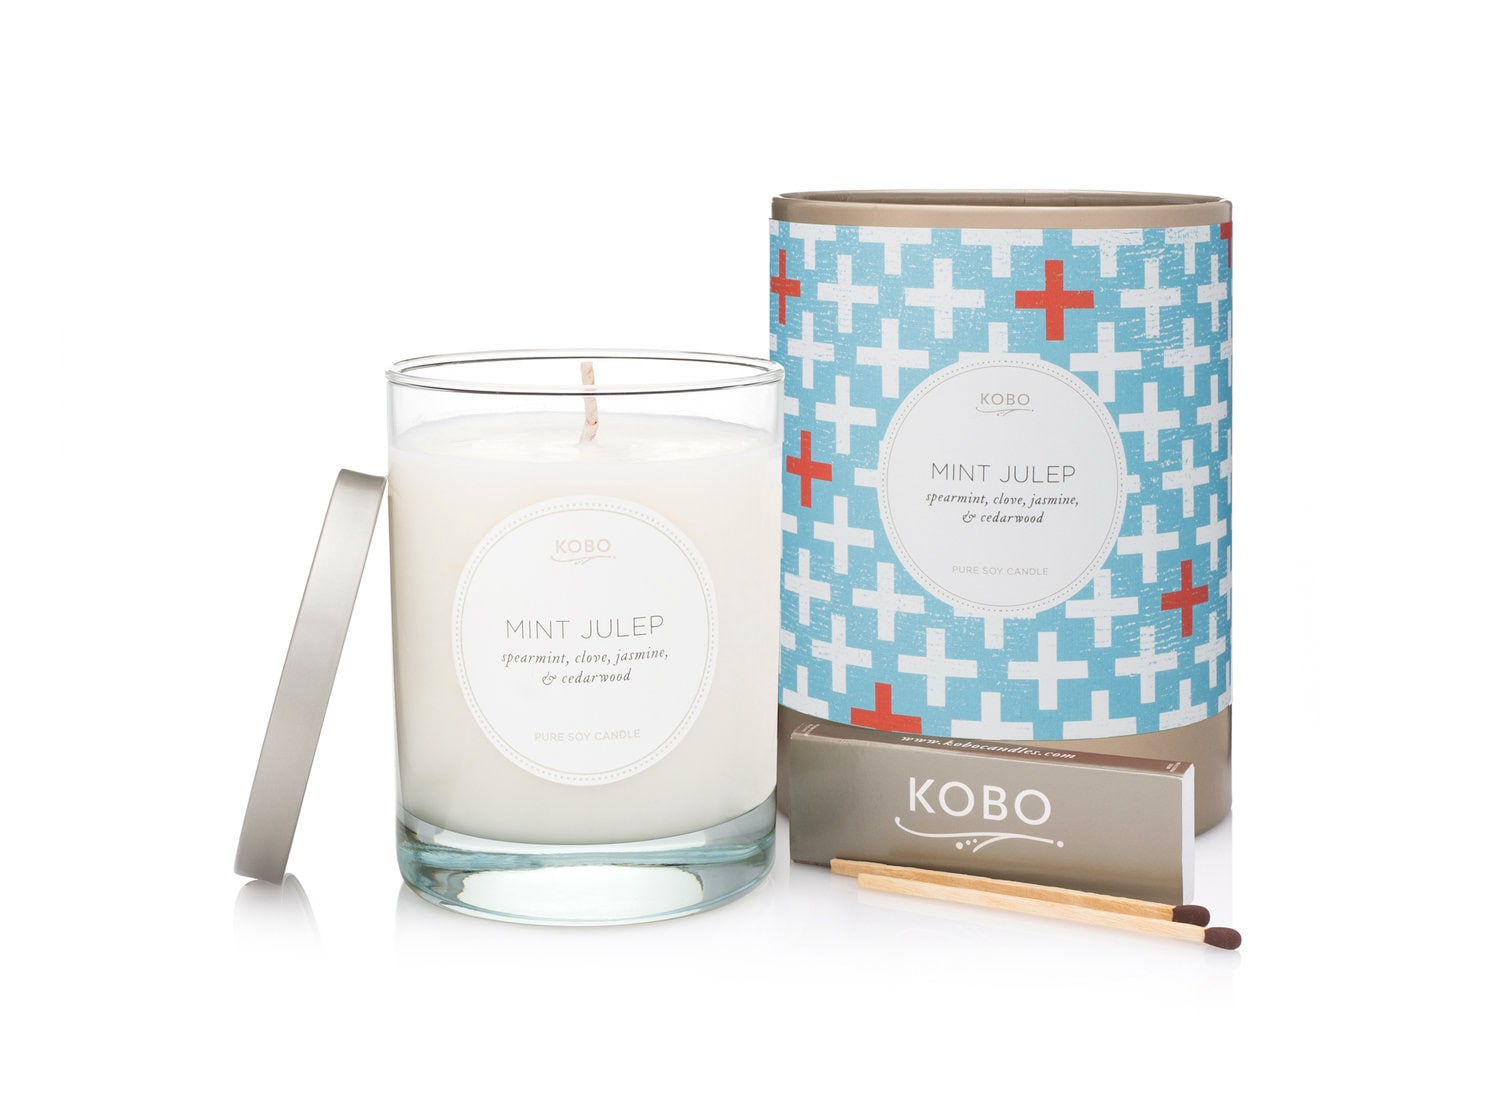 Kobo Mint Julep Candle